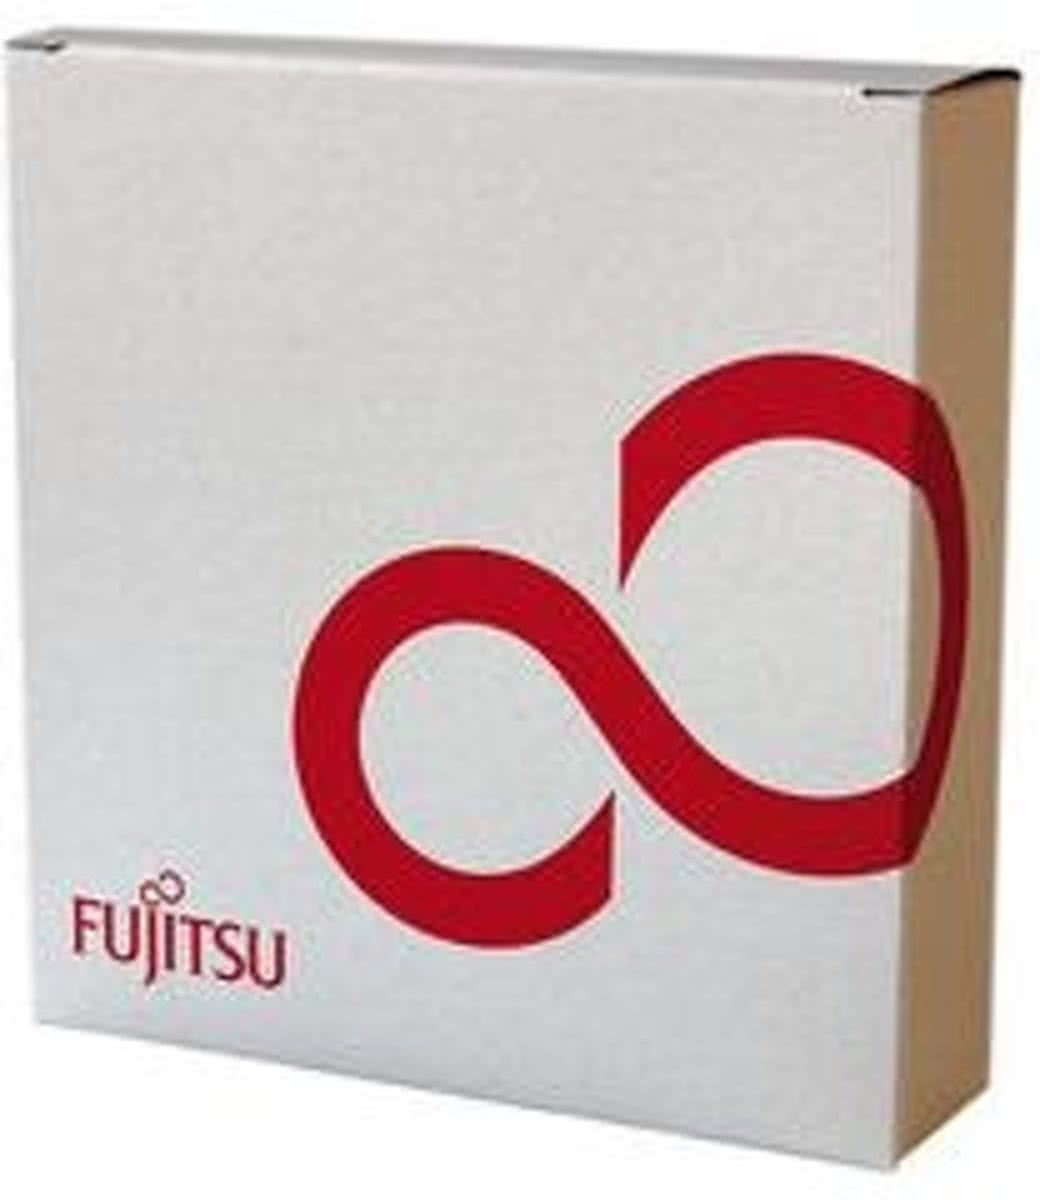 Fujitsu S26391-F1314-L200 DVD Super Multi optisch schijfstation